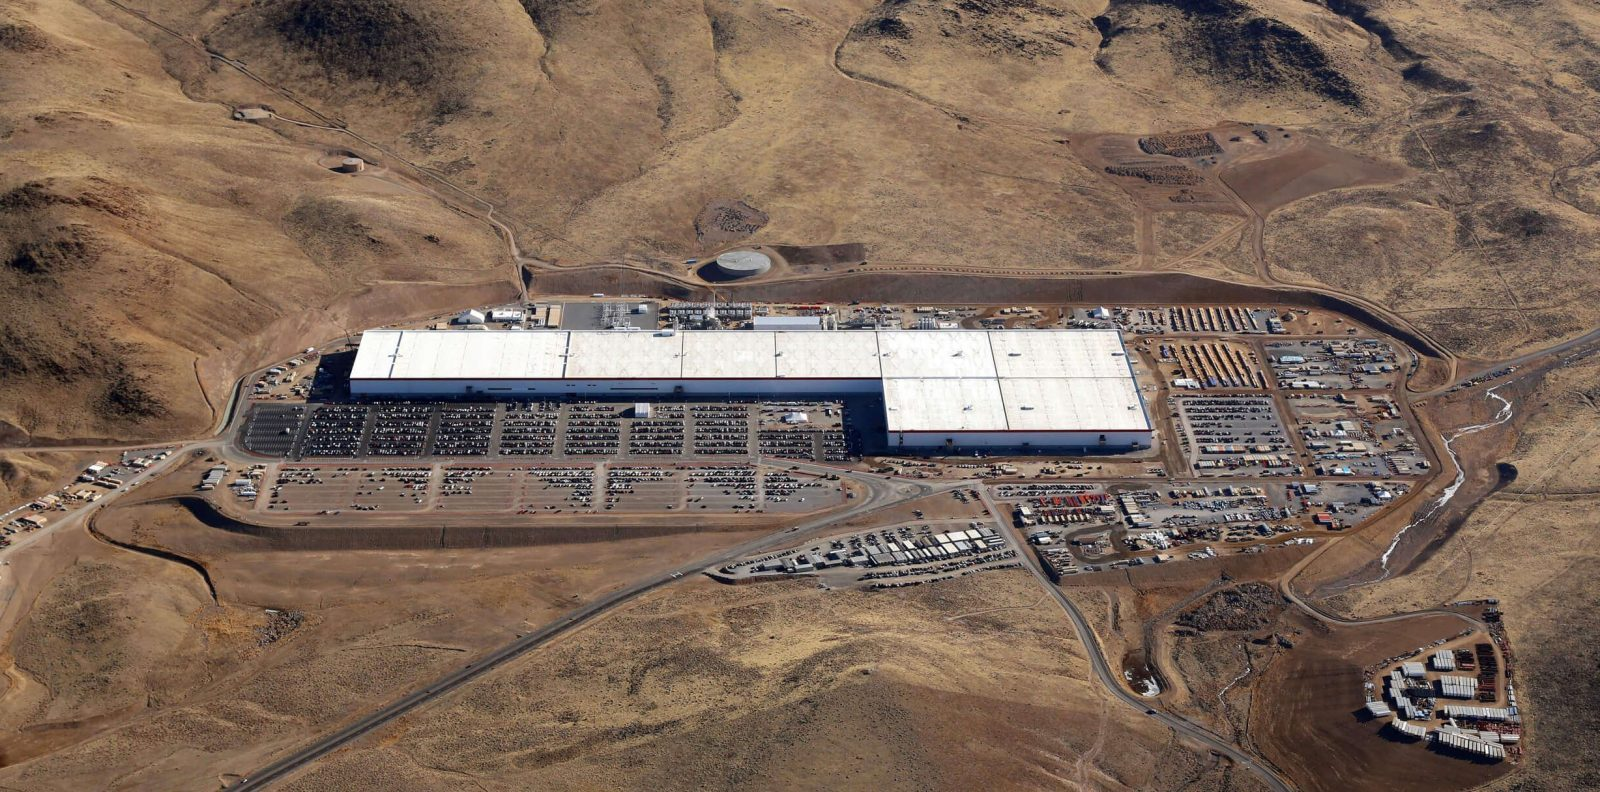 Tesla Gigafactory 1 Building Permits Show Slowdown In Structure Expansion Focus On Interior Work